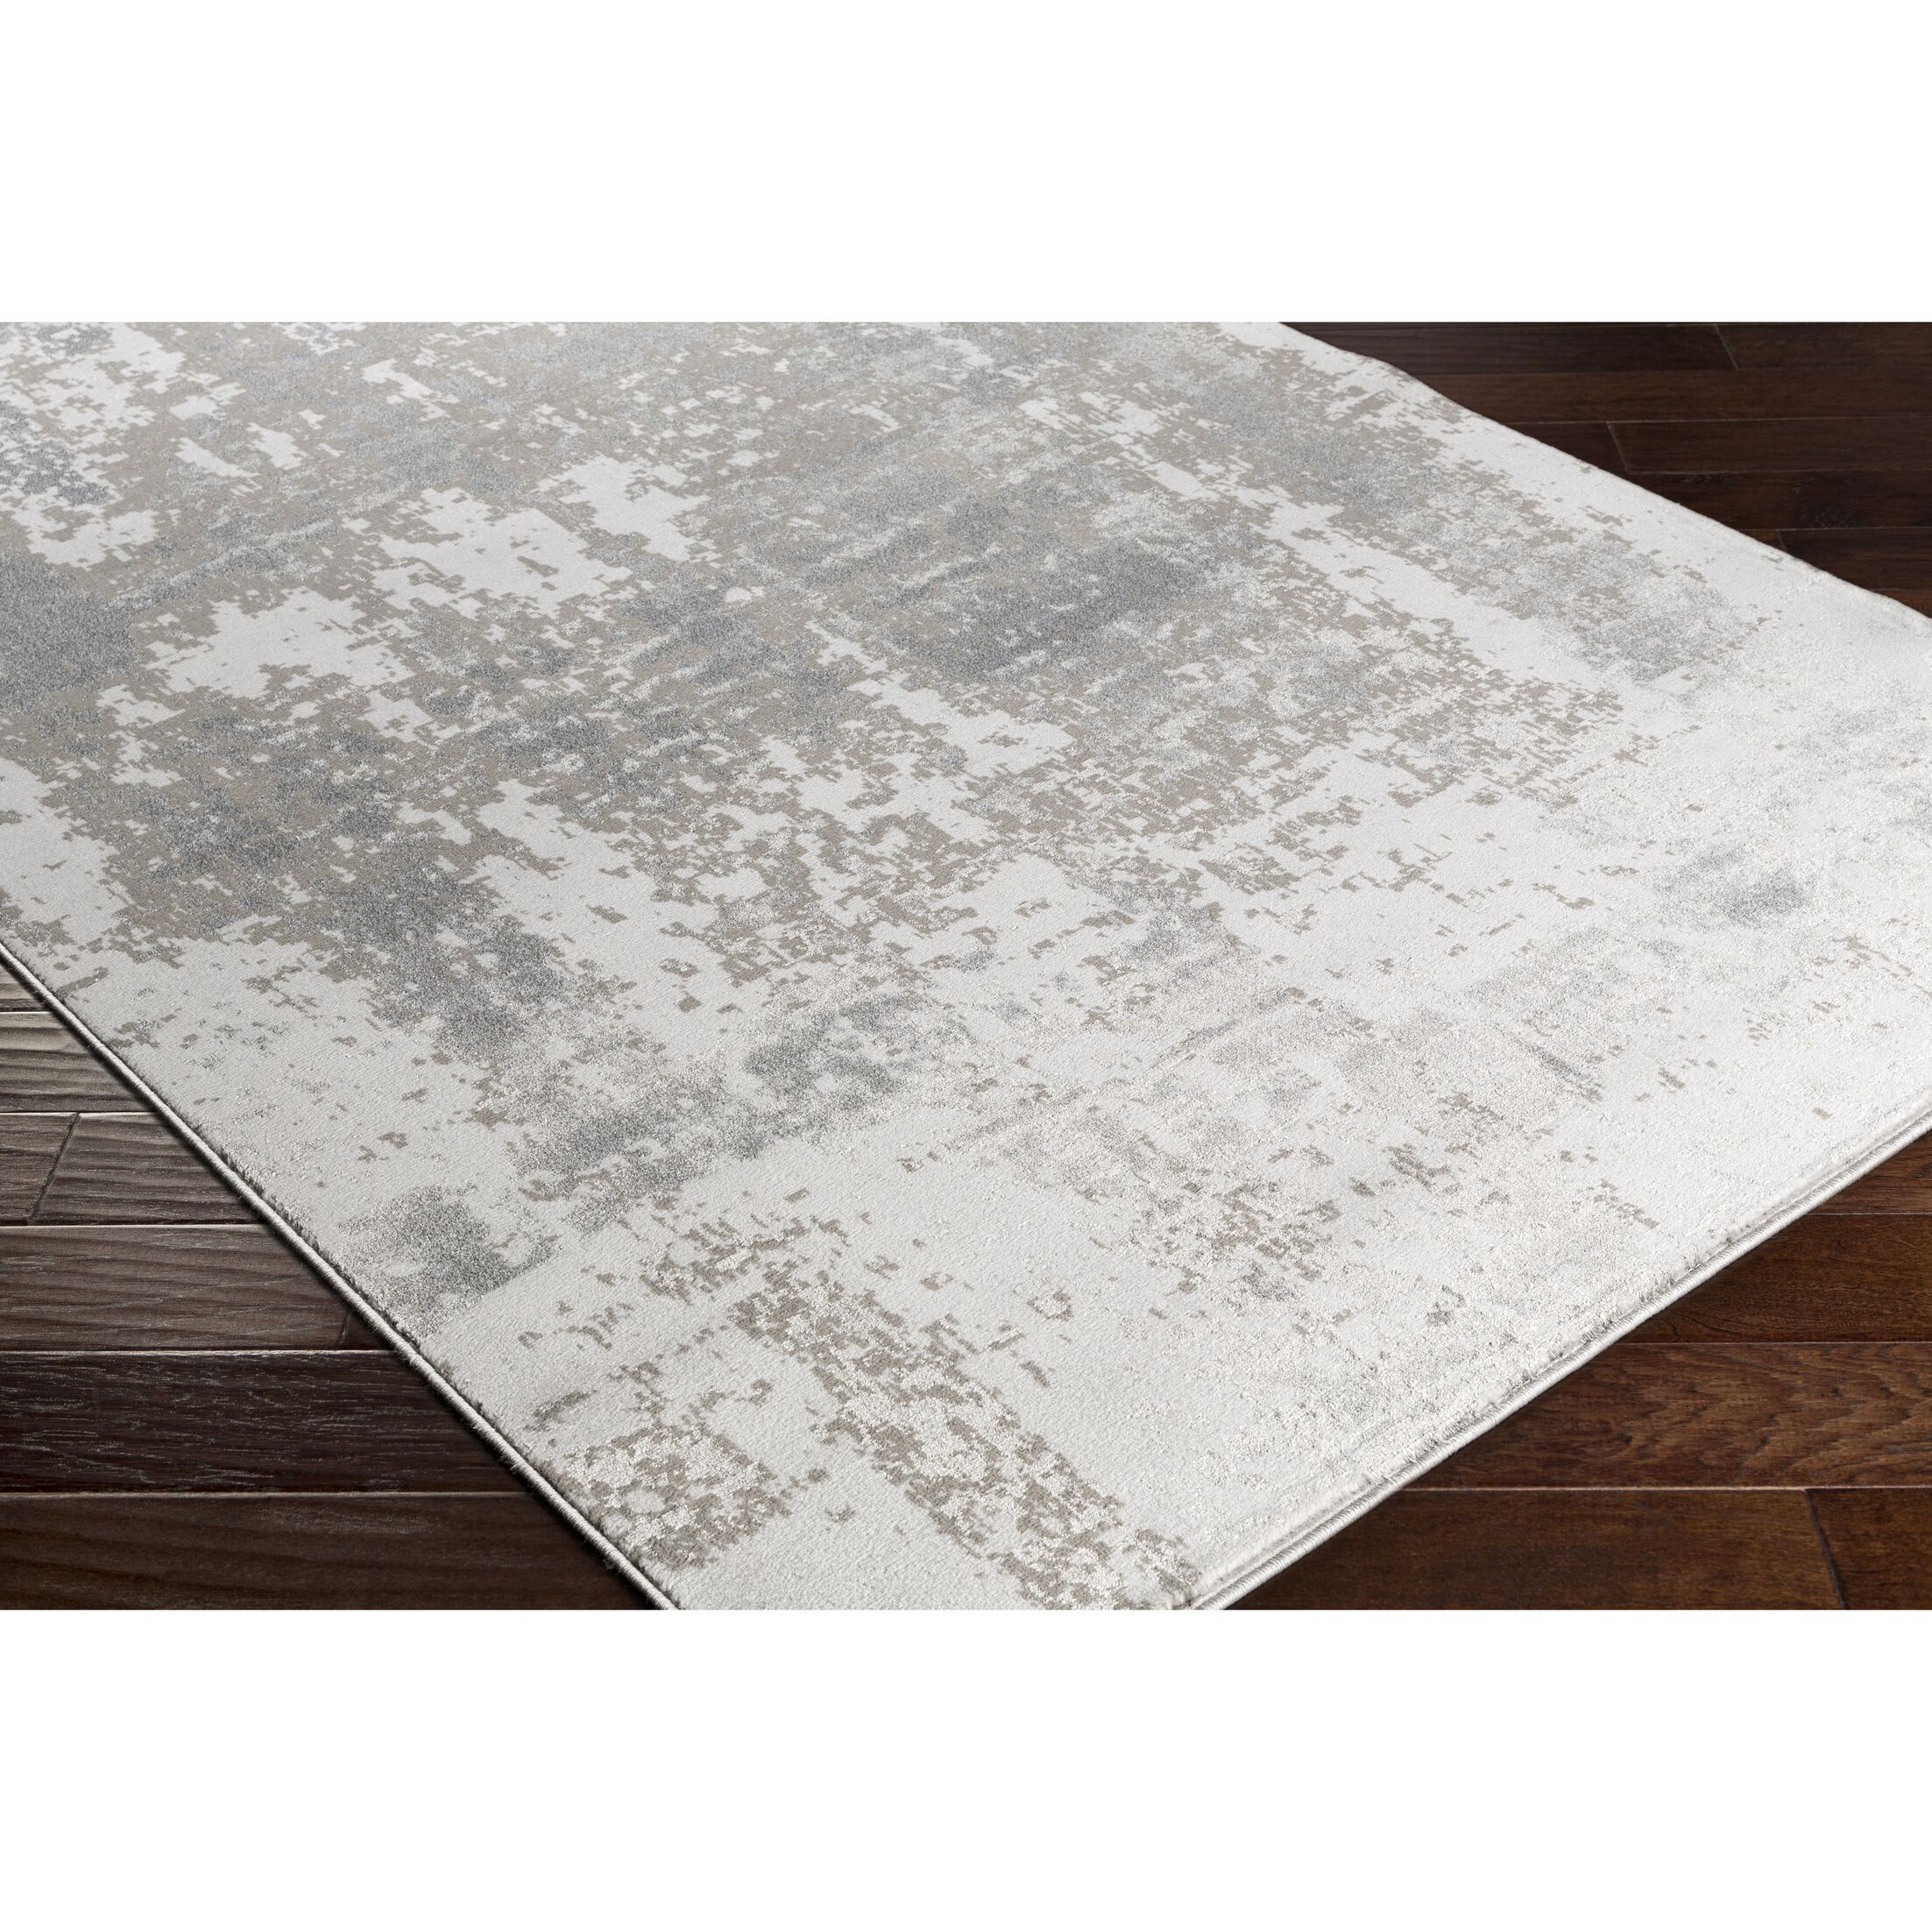 Anvi Neutral/Gray Area Rug Rug Size: Rectangle 7'10